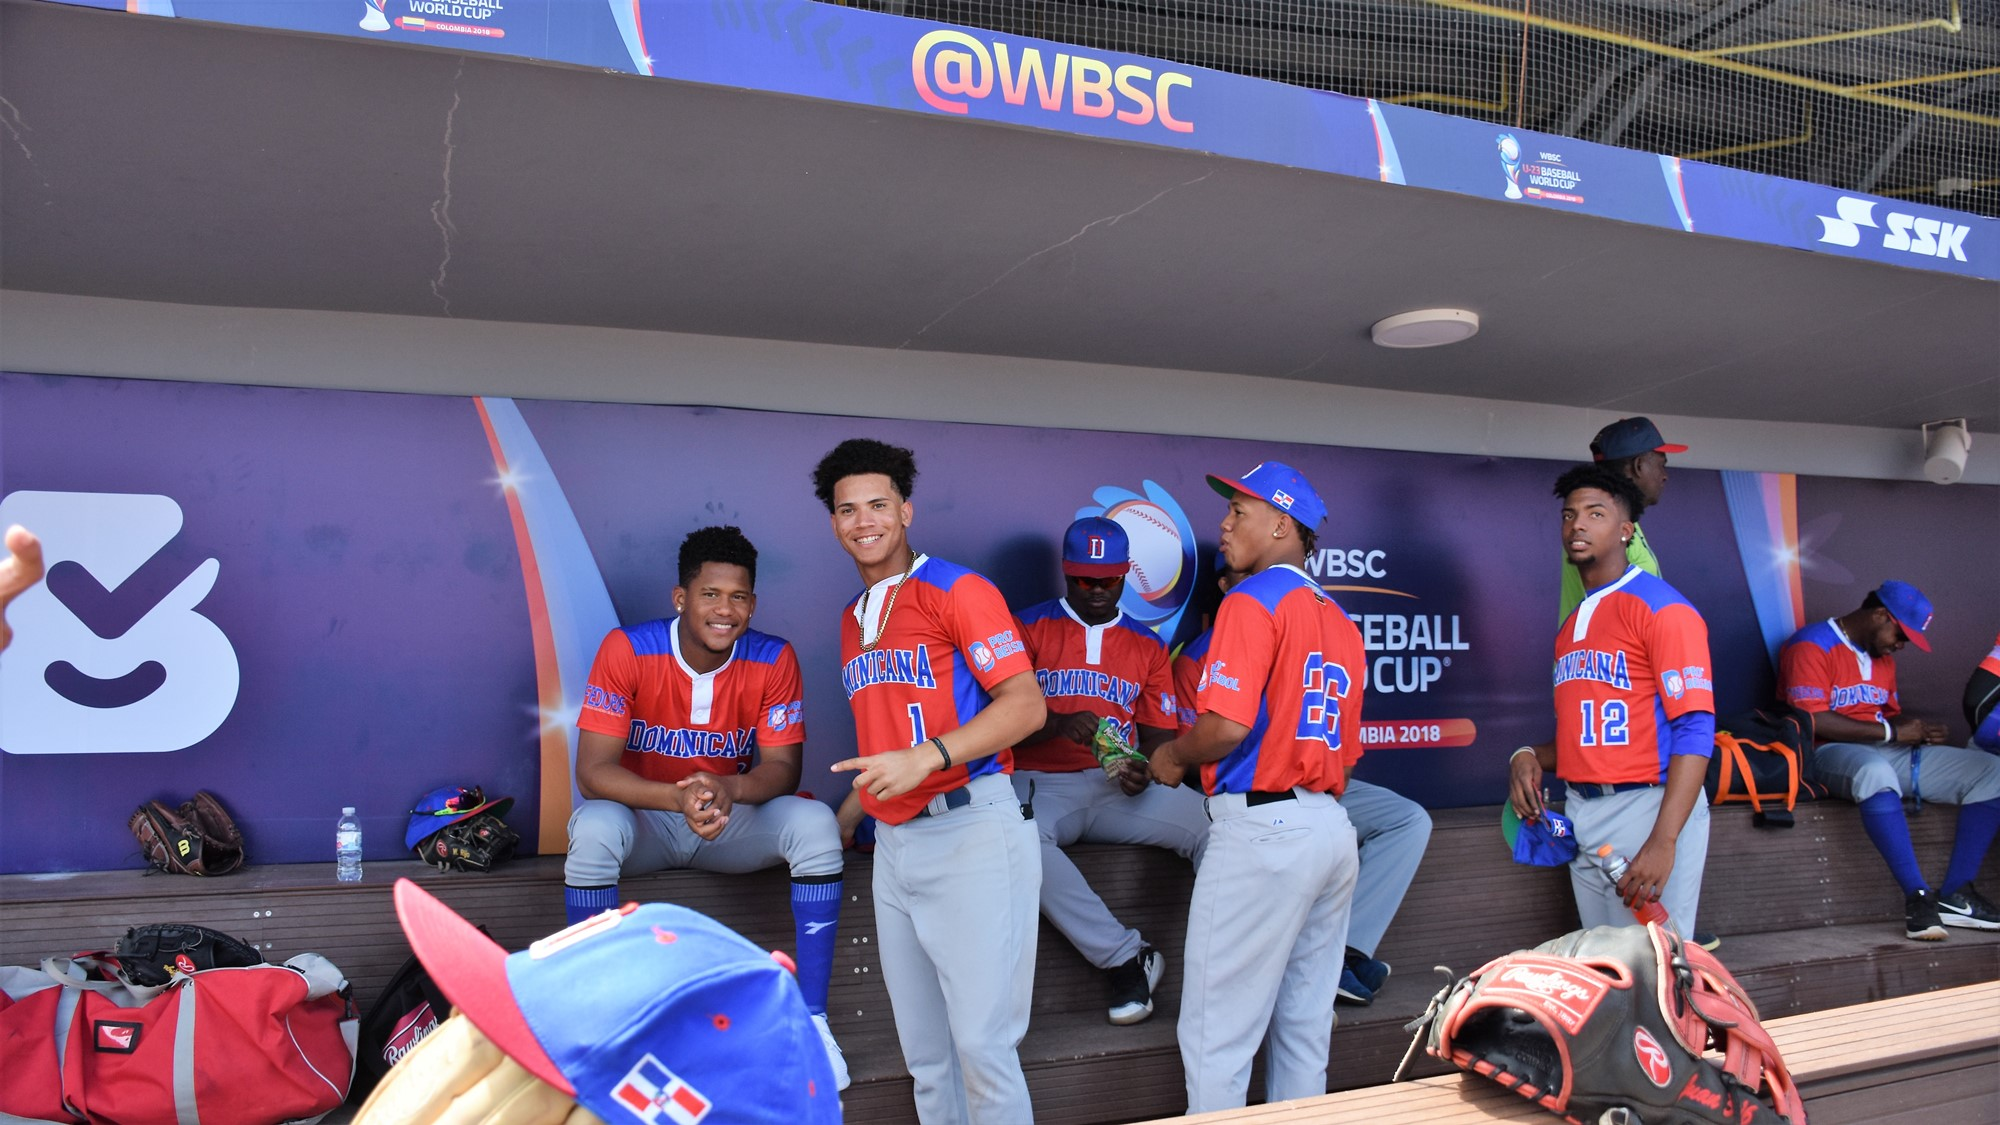 The dug out of the Dominican Republic before the game